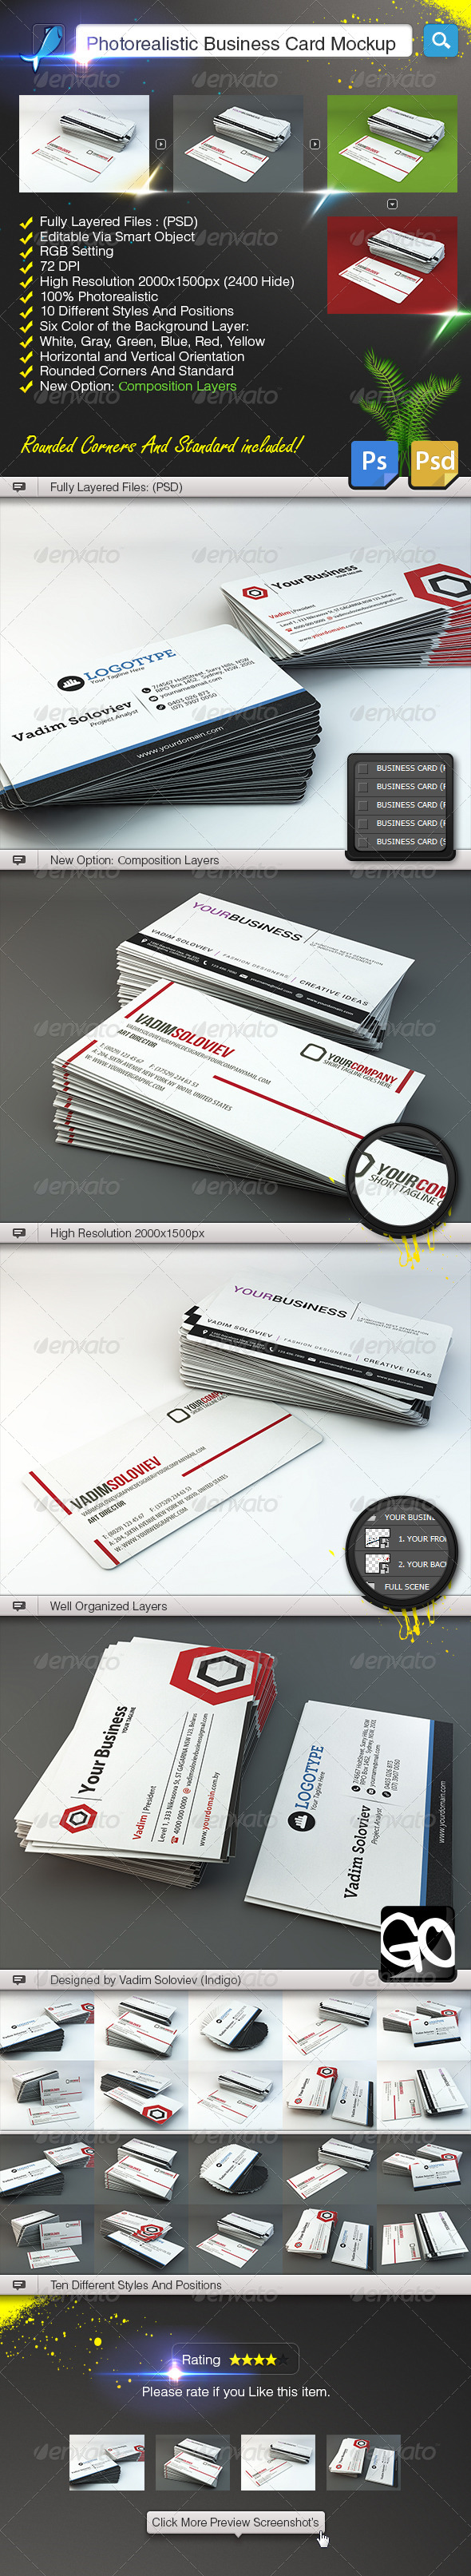 Photorealistic Business Card Mockup - Business Cards Print